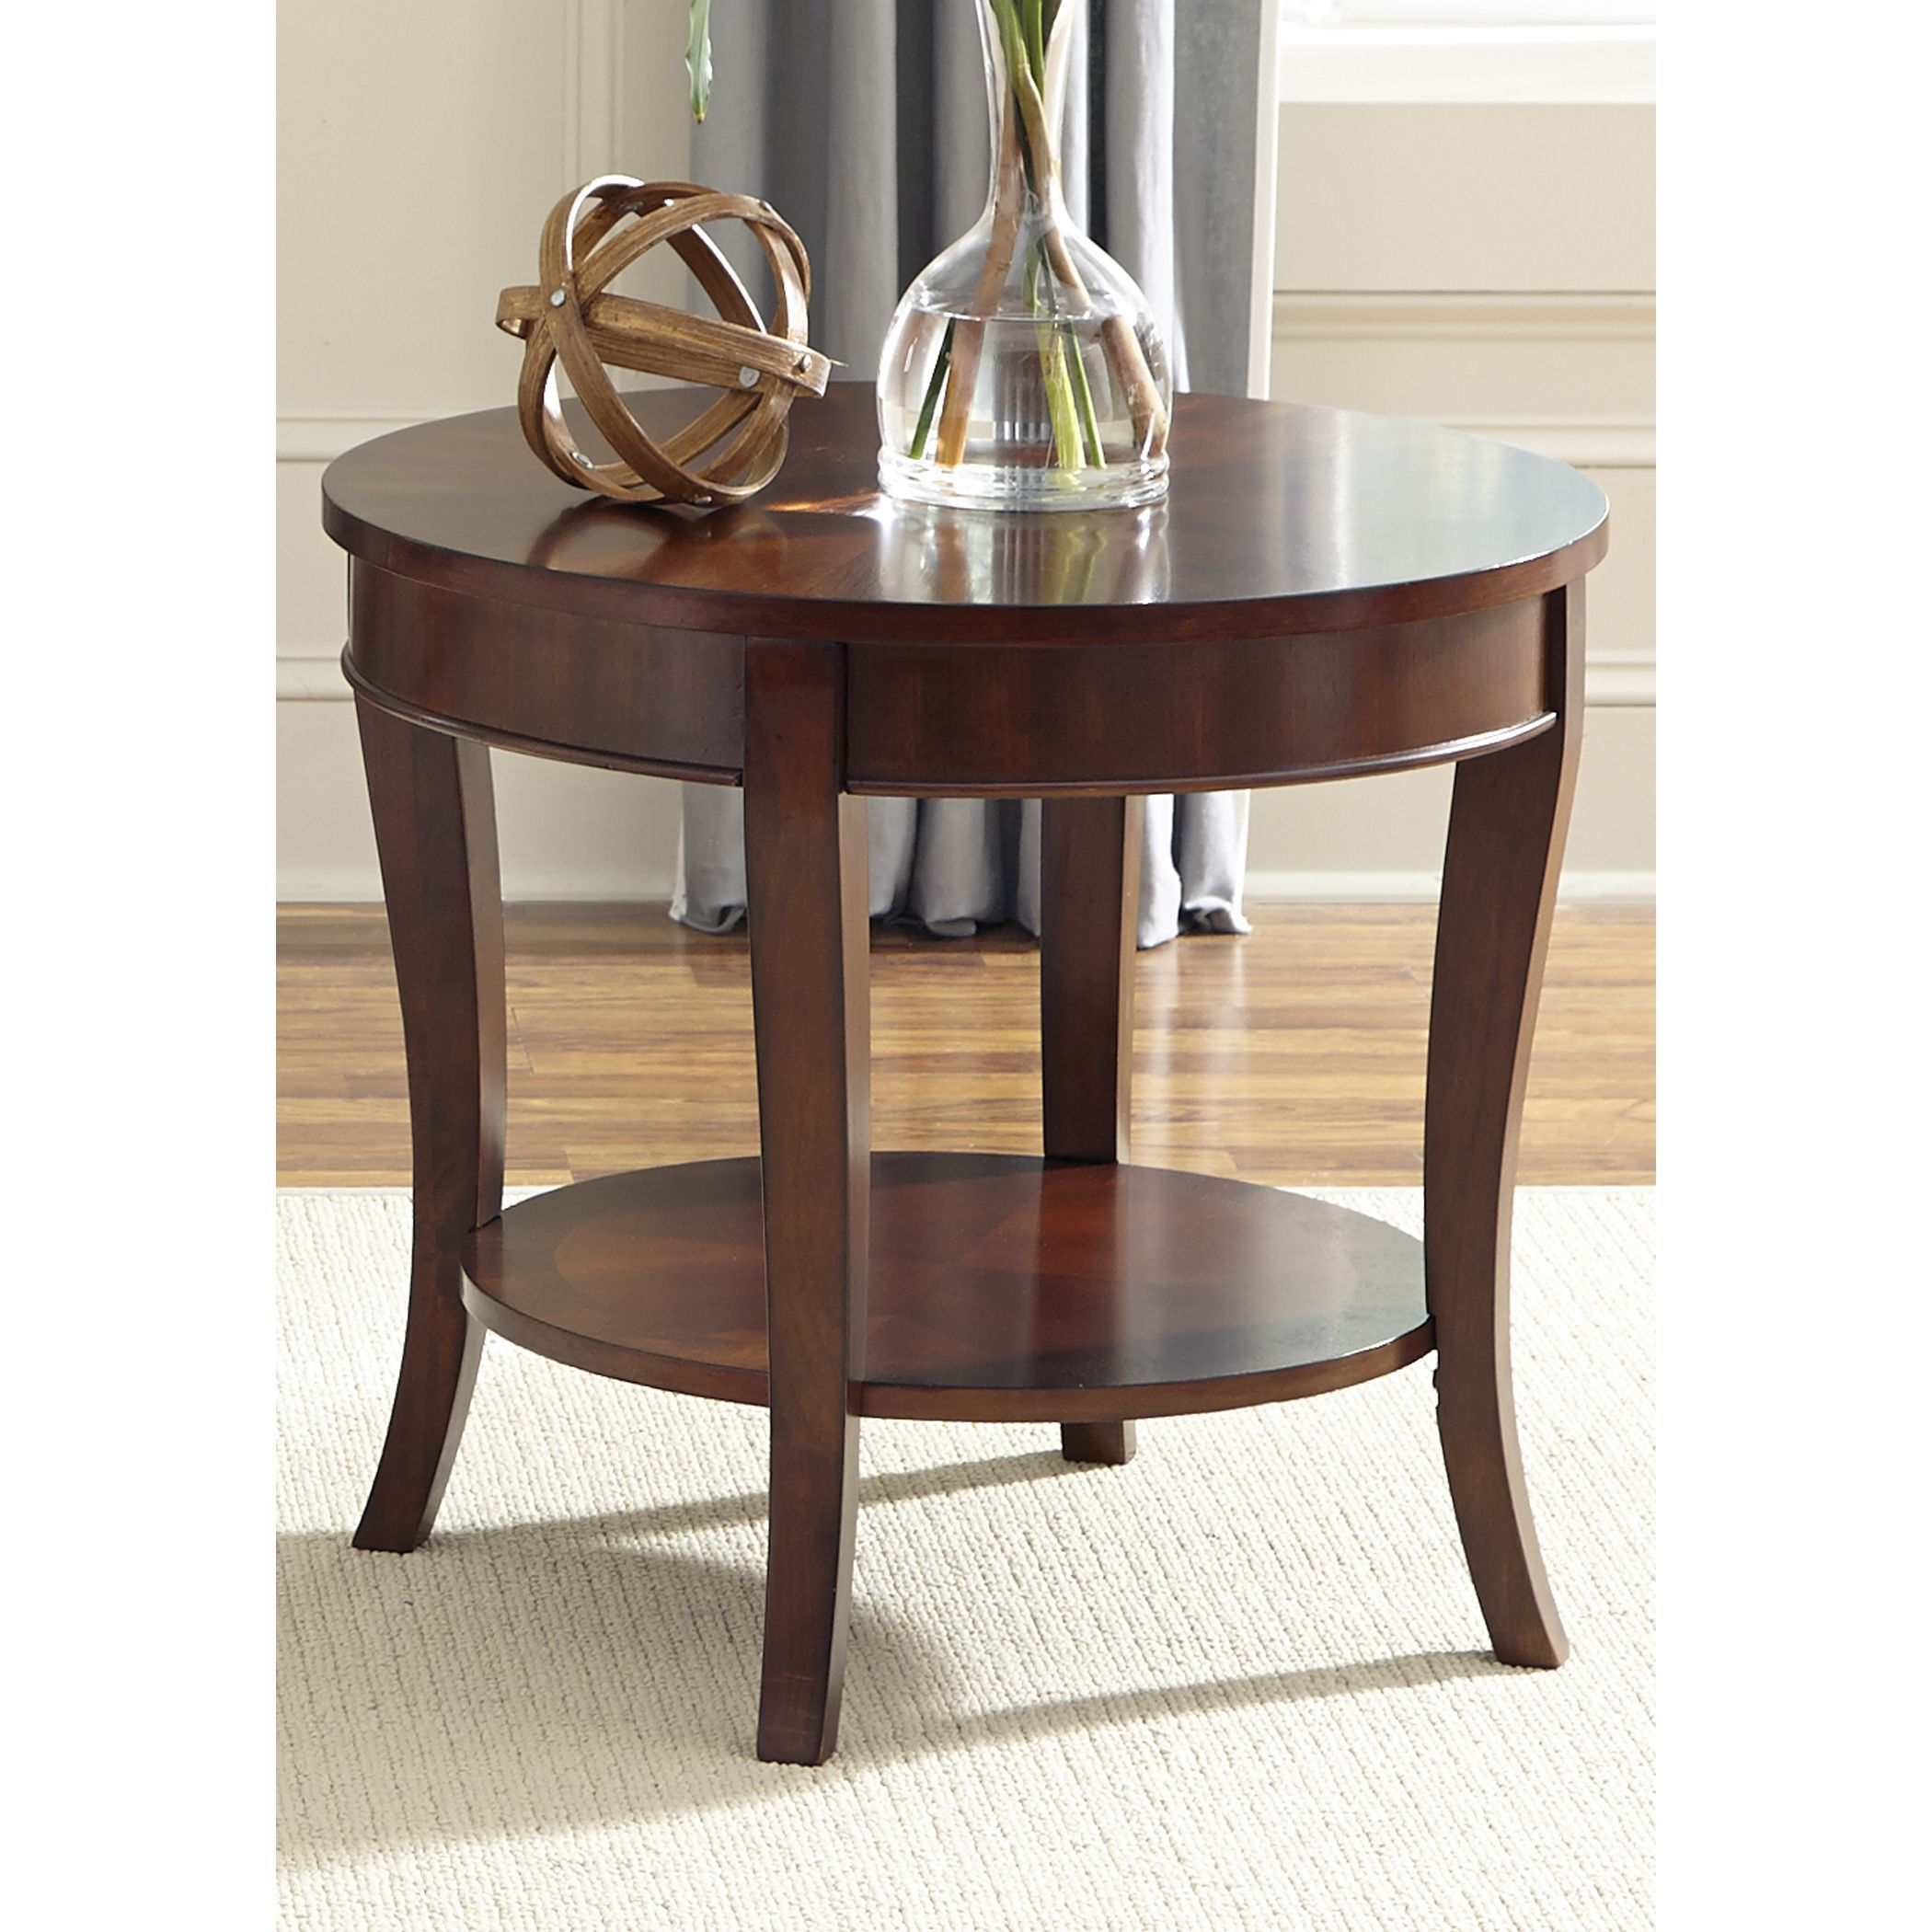 the liberty round end table features rich cherry finish over solid hardwood construction traditional styling and flared leg design complete glass top couch arch coffee wood block